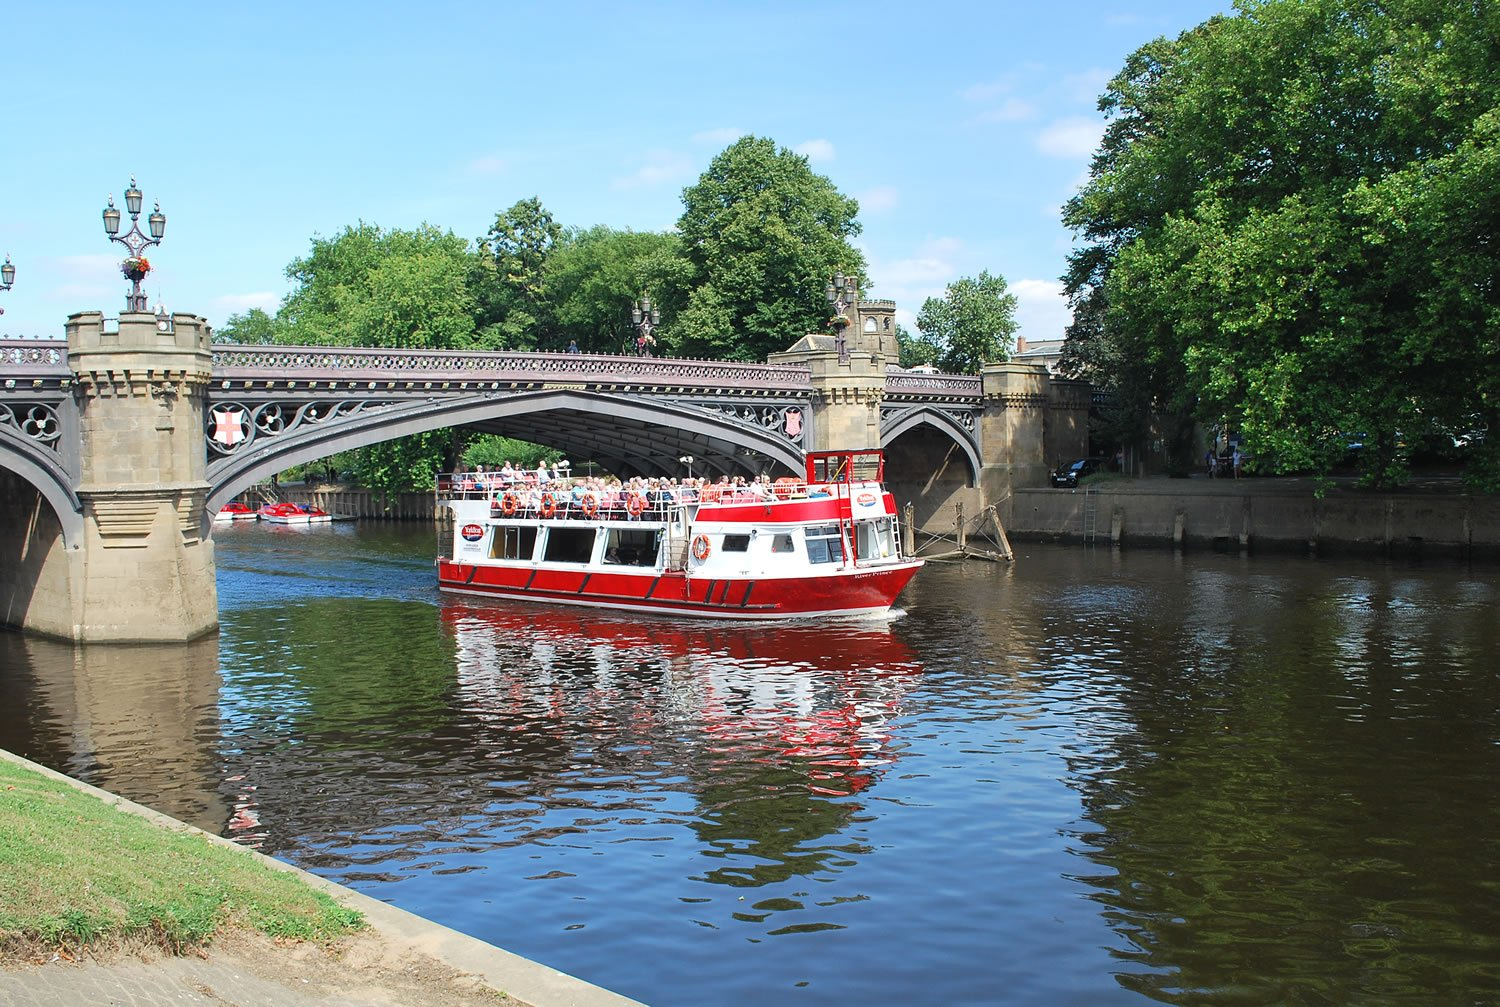 City Cruise with free time in York